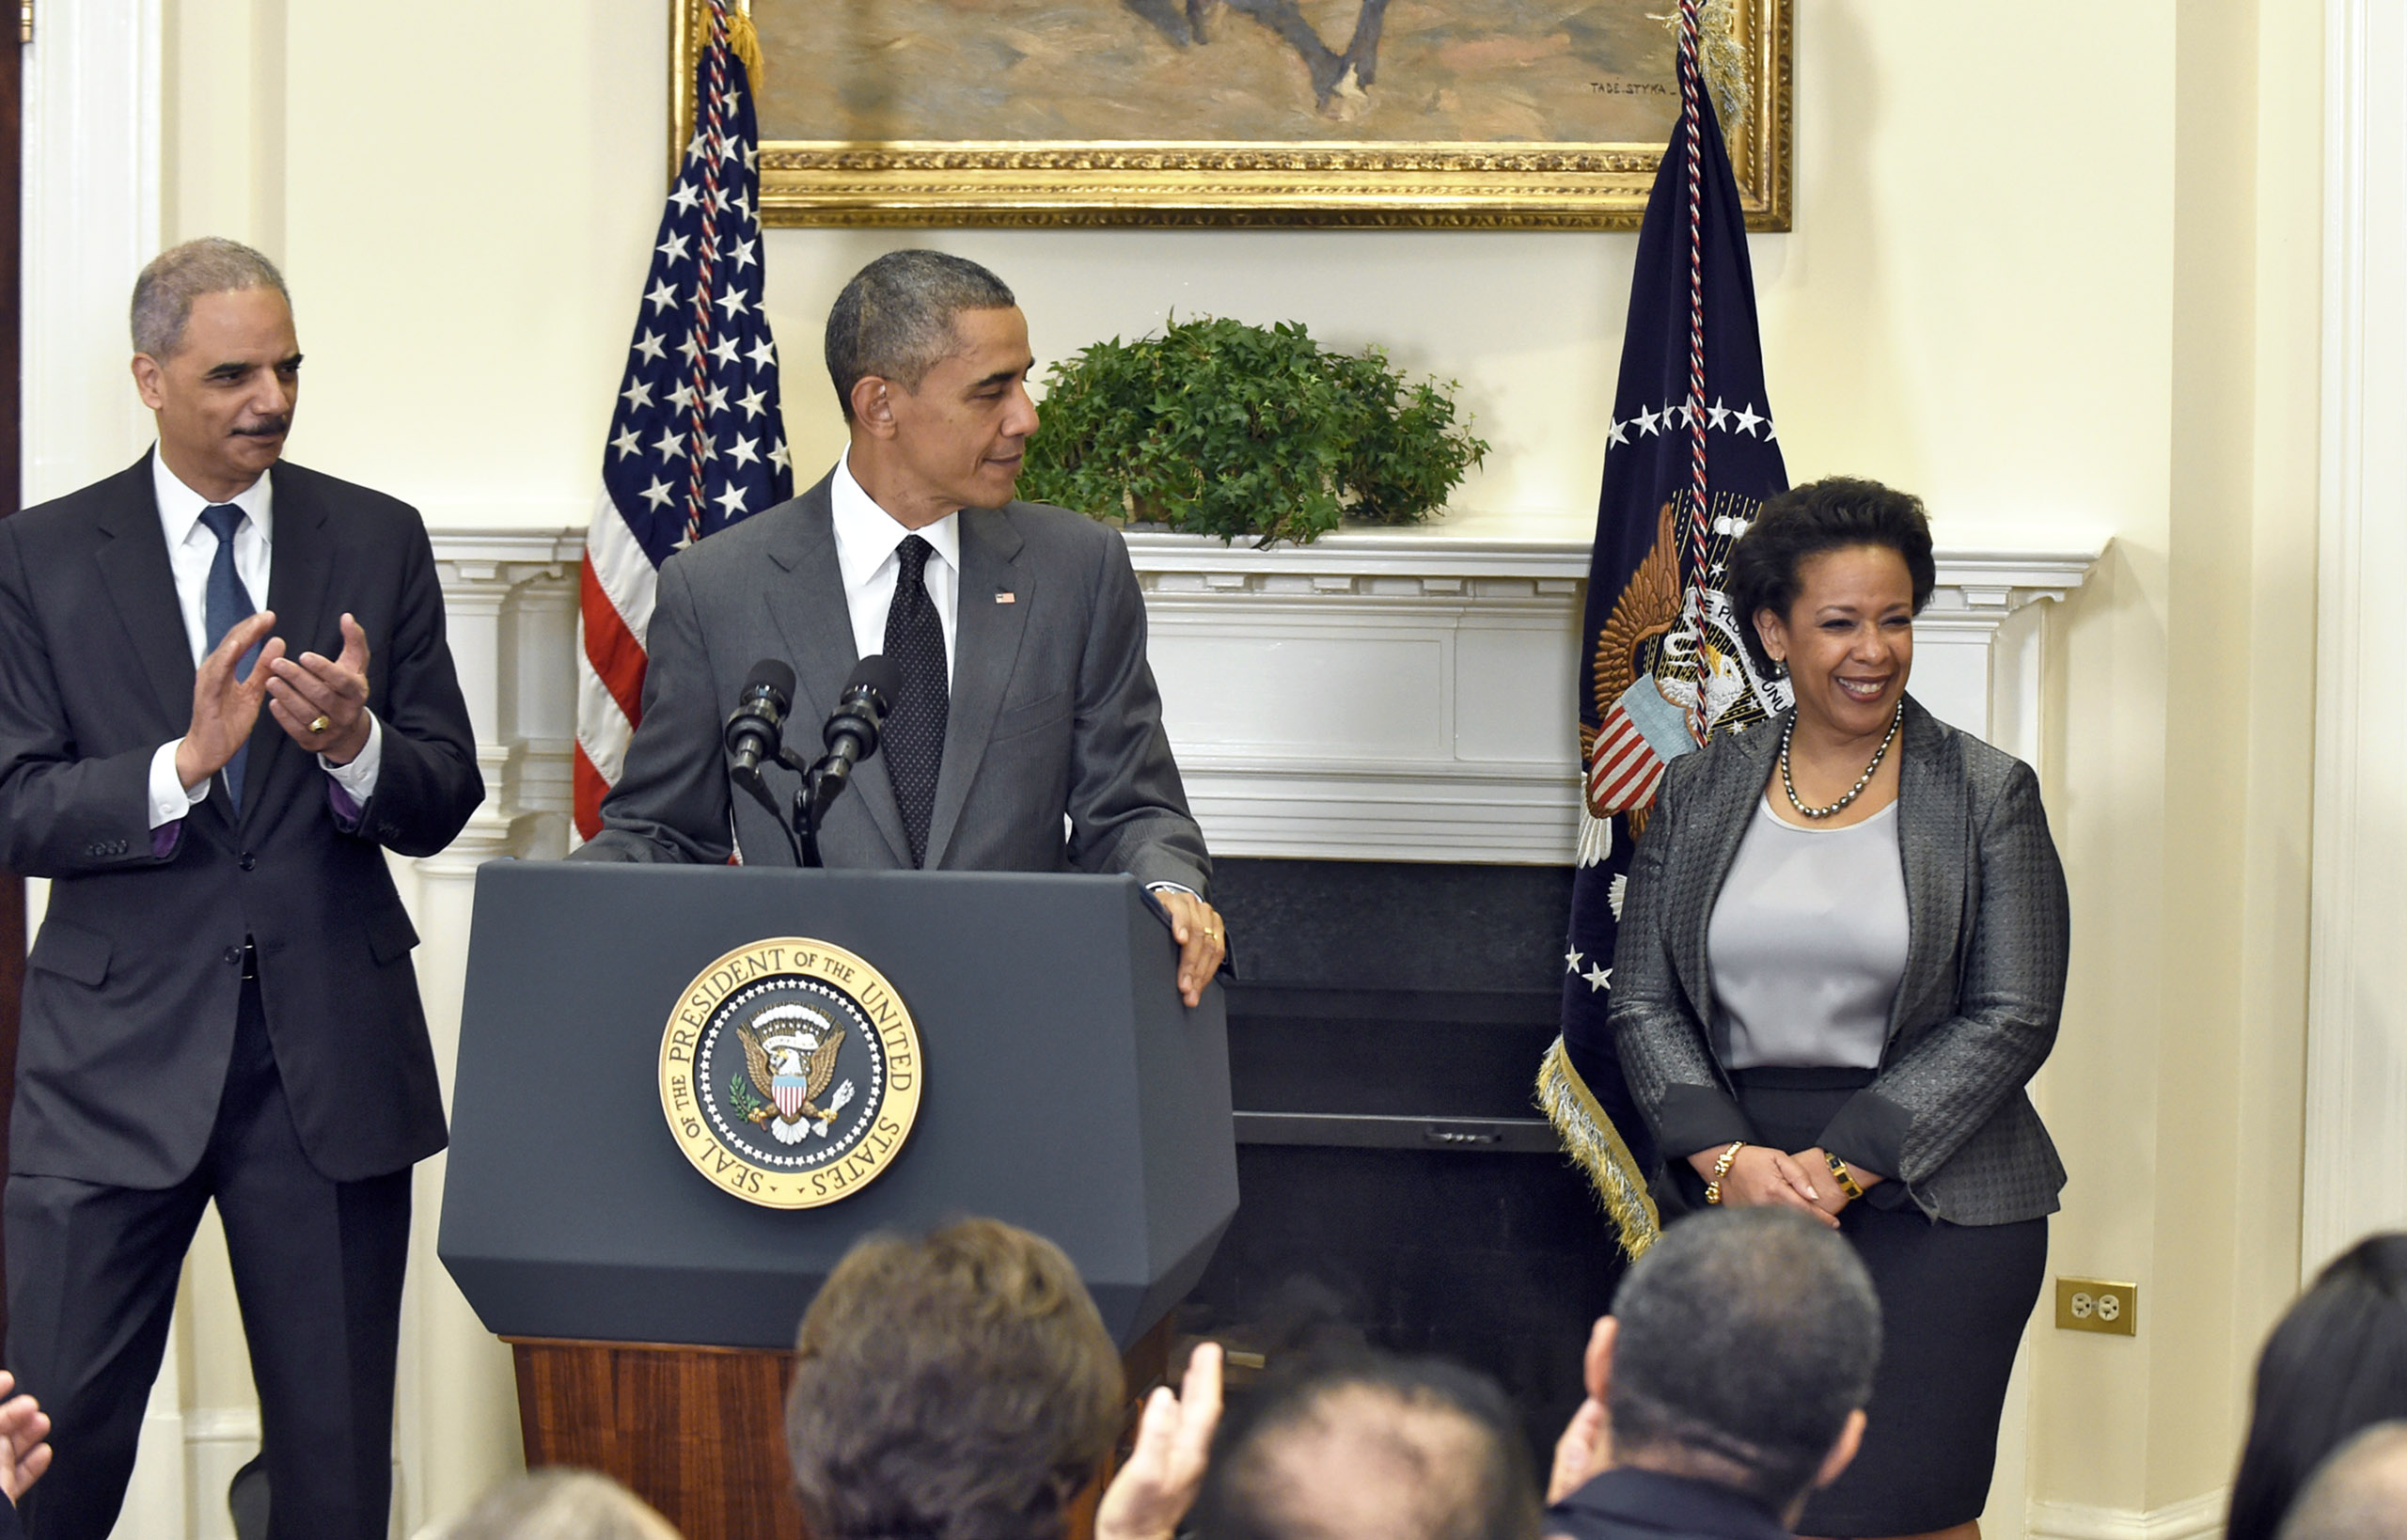 The top U.S. prosecutor for the Eastern District of New York, in Brooklyn, Lynch was one of the few names on President Obama's short list without close ties to the White House. If confirmed, she would be the first ­female African-American Attorney General.